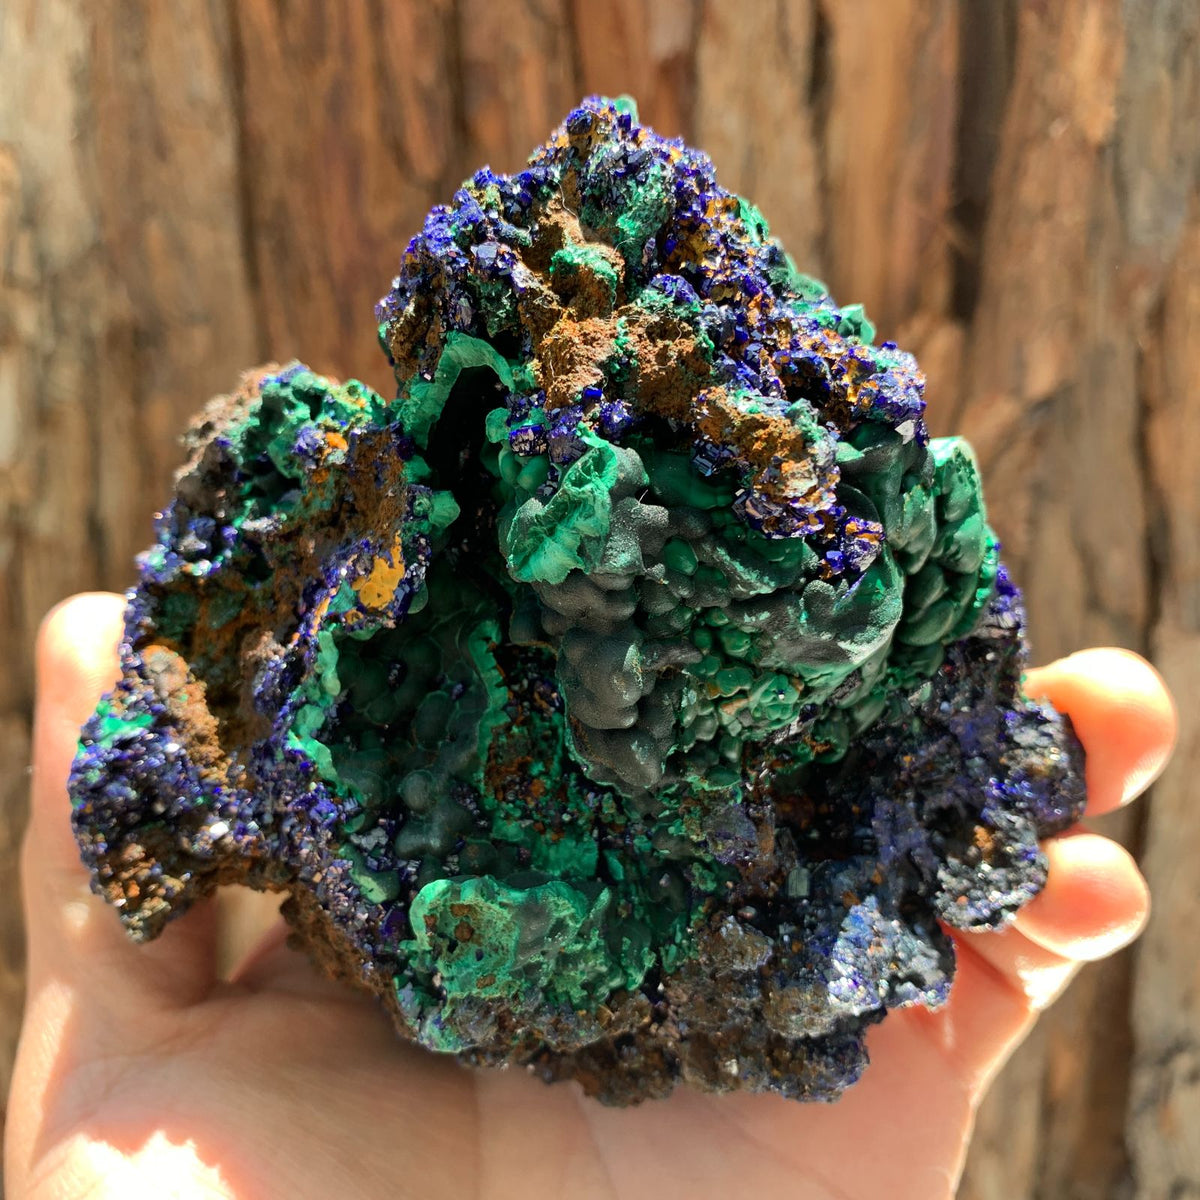 10.5cm 614g Azurite from Sepon Mine, Laos